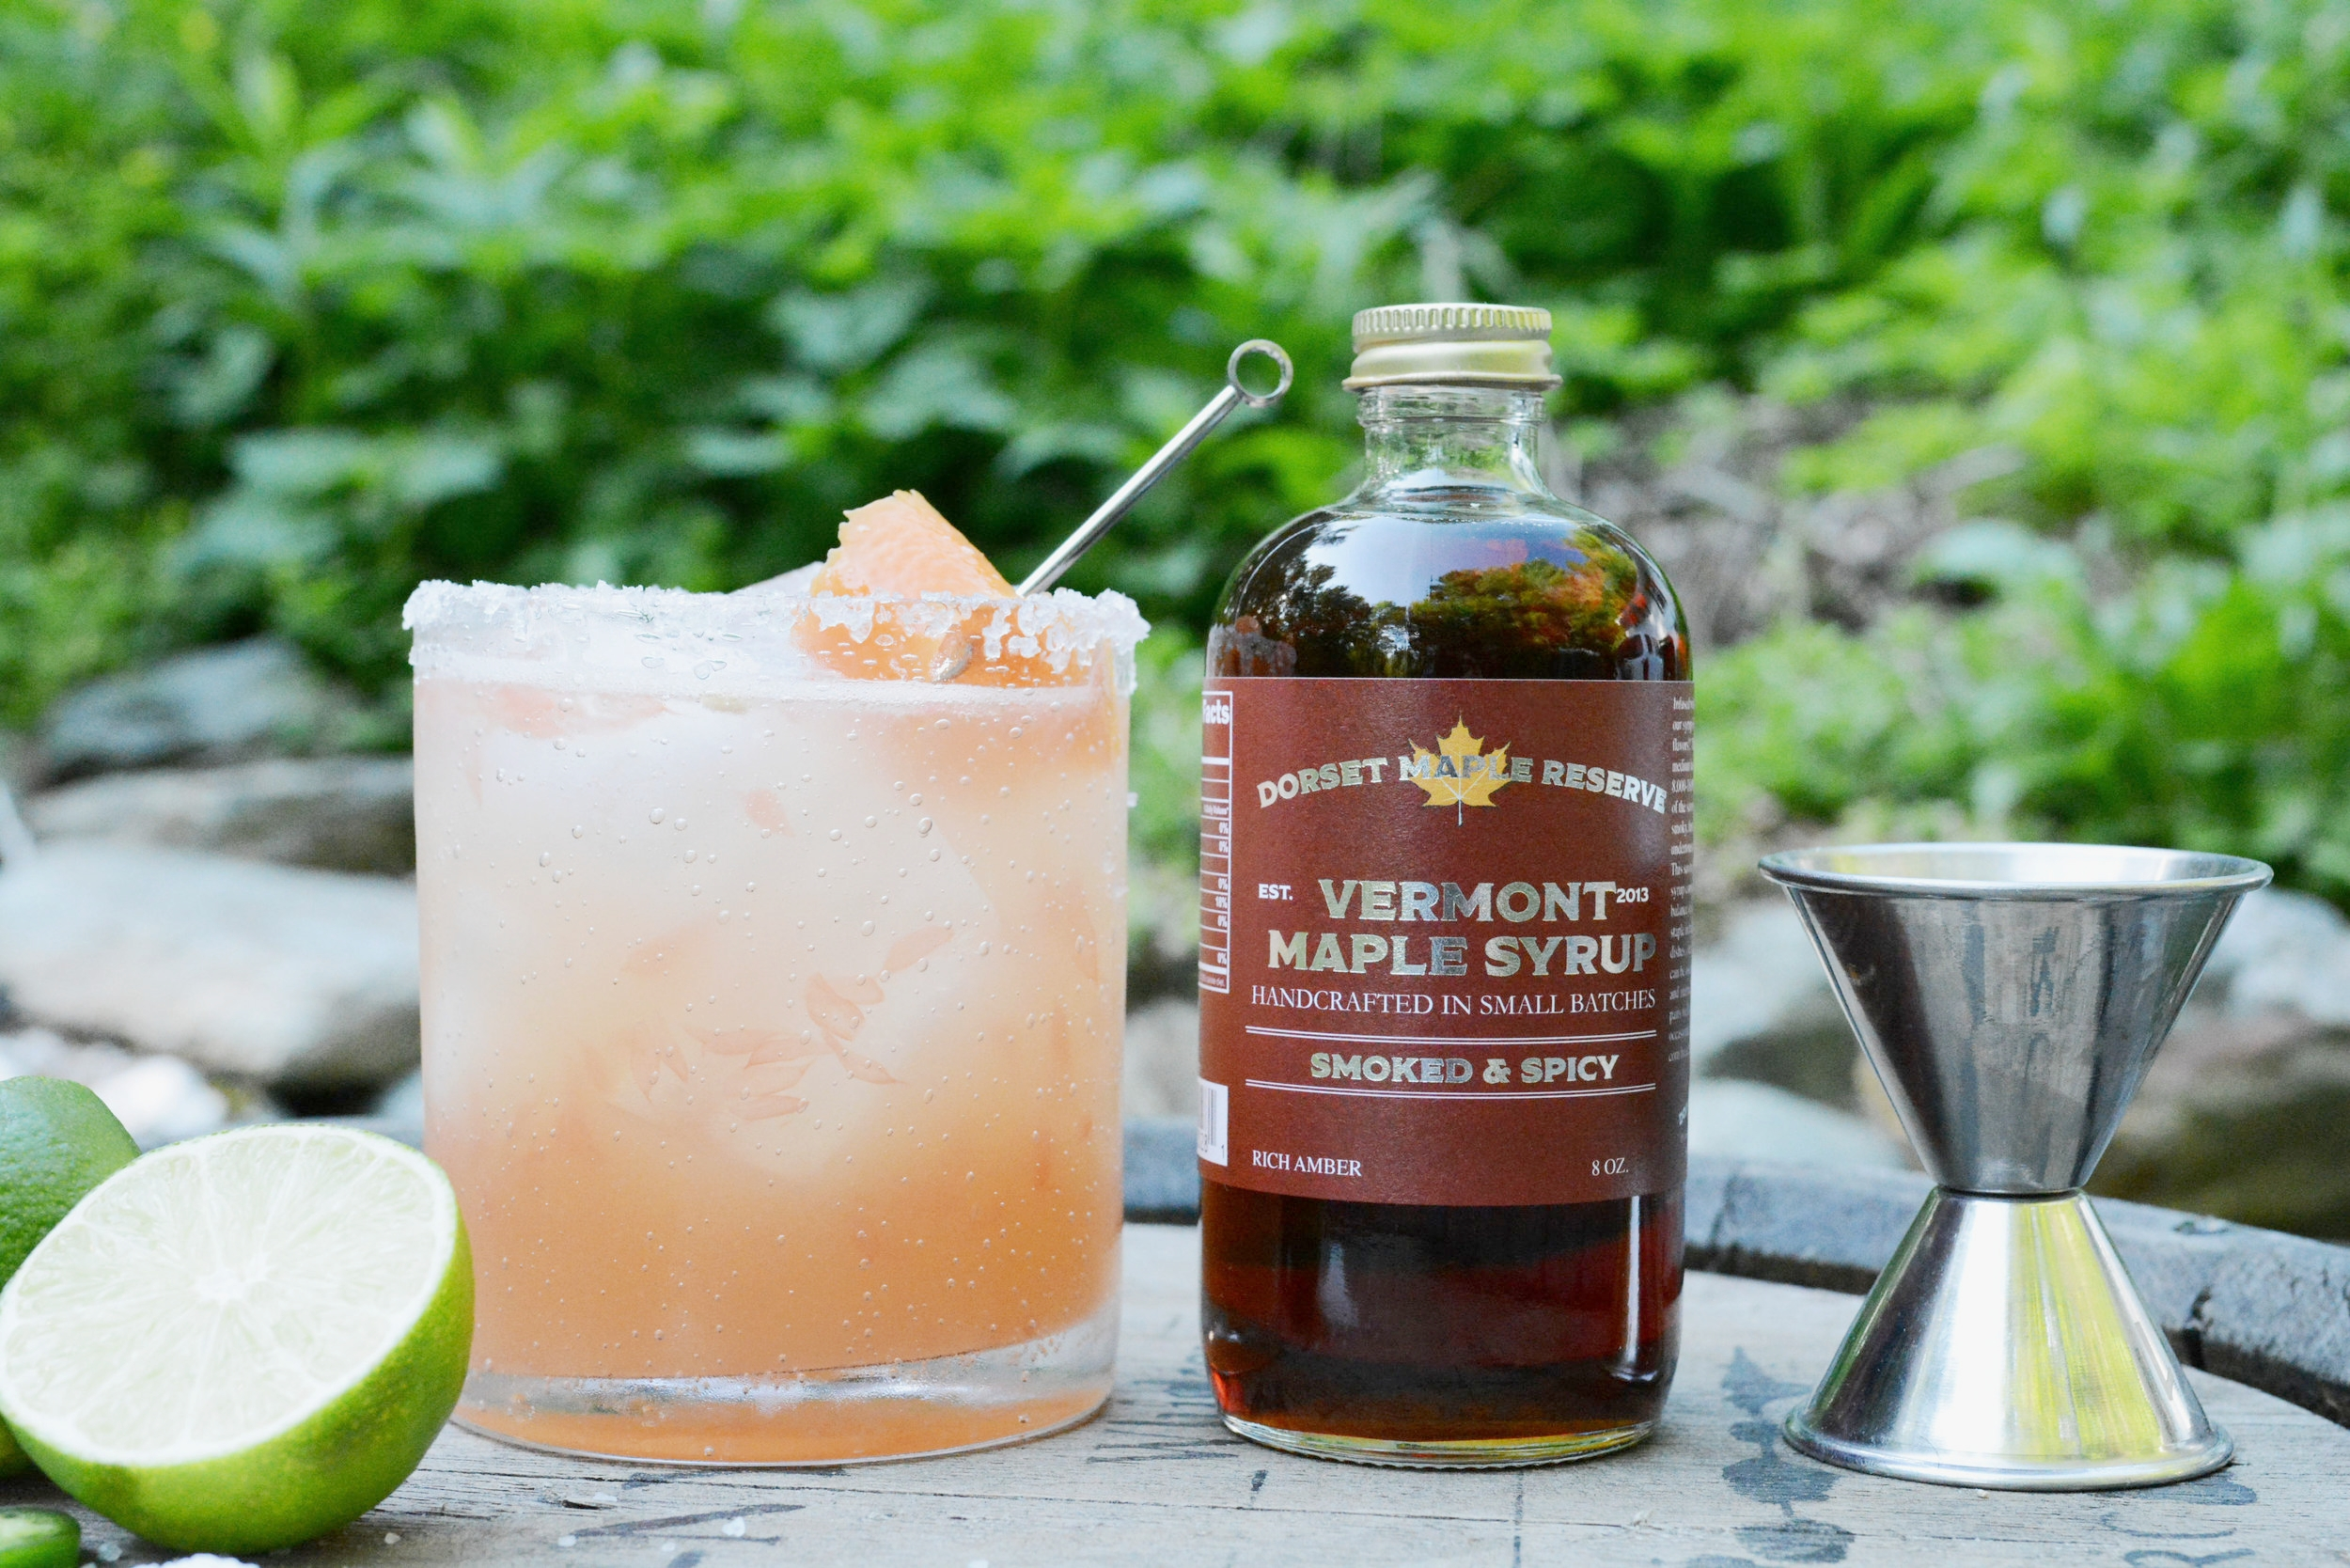 Smoked & Spicy Paloma - 2 oz Silver tequila1/2 a lime juiced1/2 a pink grapefruit juiced (fresh store bought is fine as well)1/2 oz Dorset Maple Reserve Smoked & Spicy maple syrupShake and serve in salt rimmed glass on the rocks.